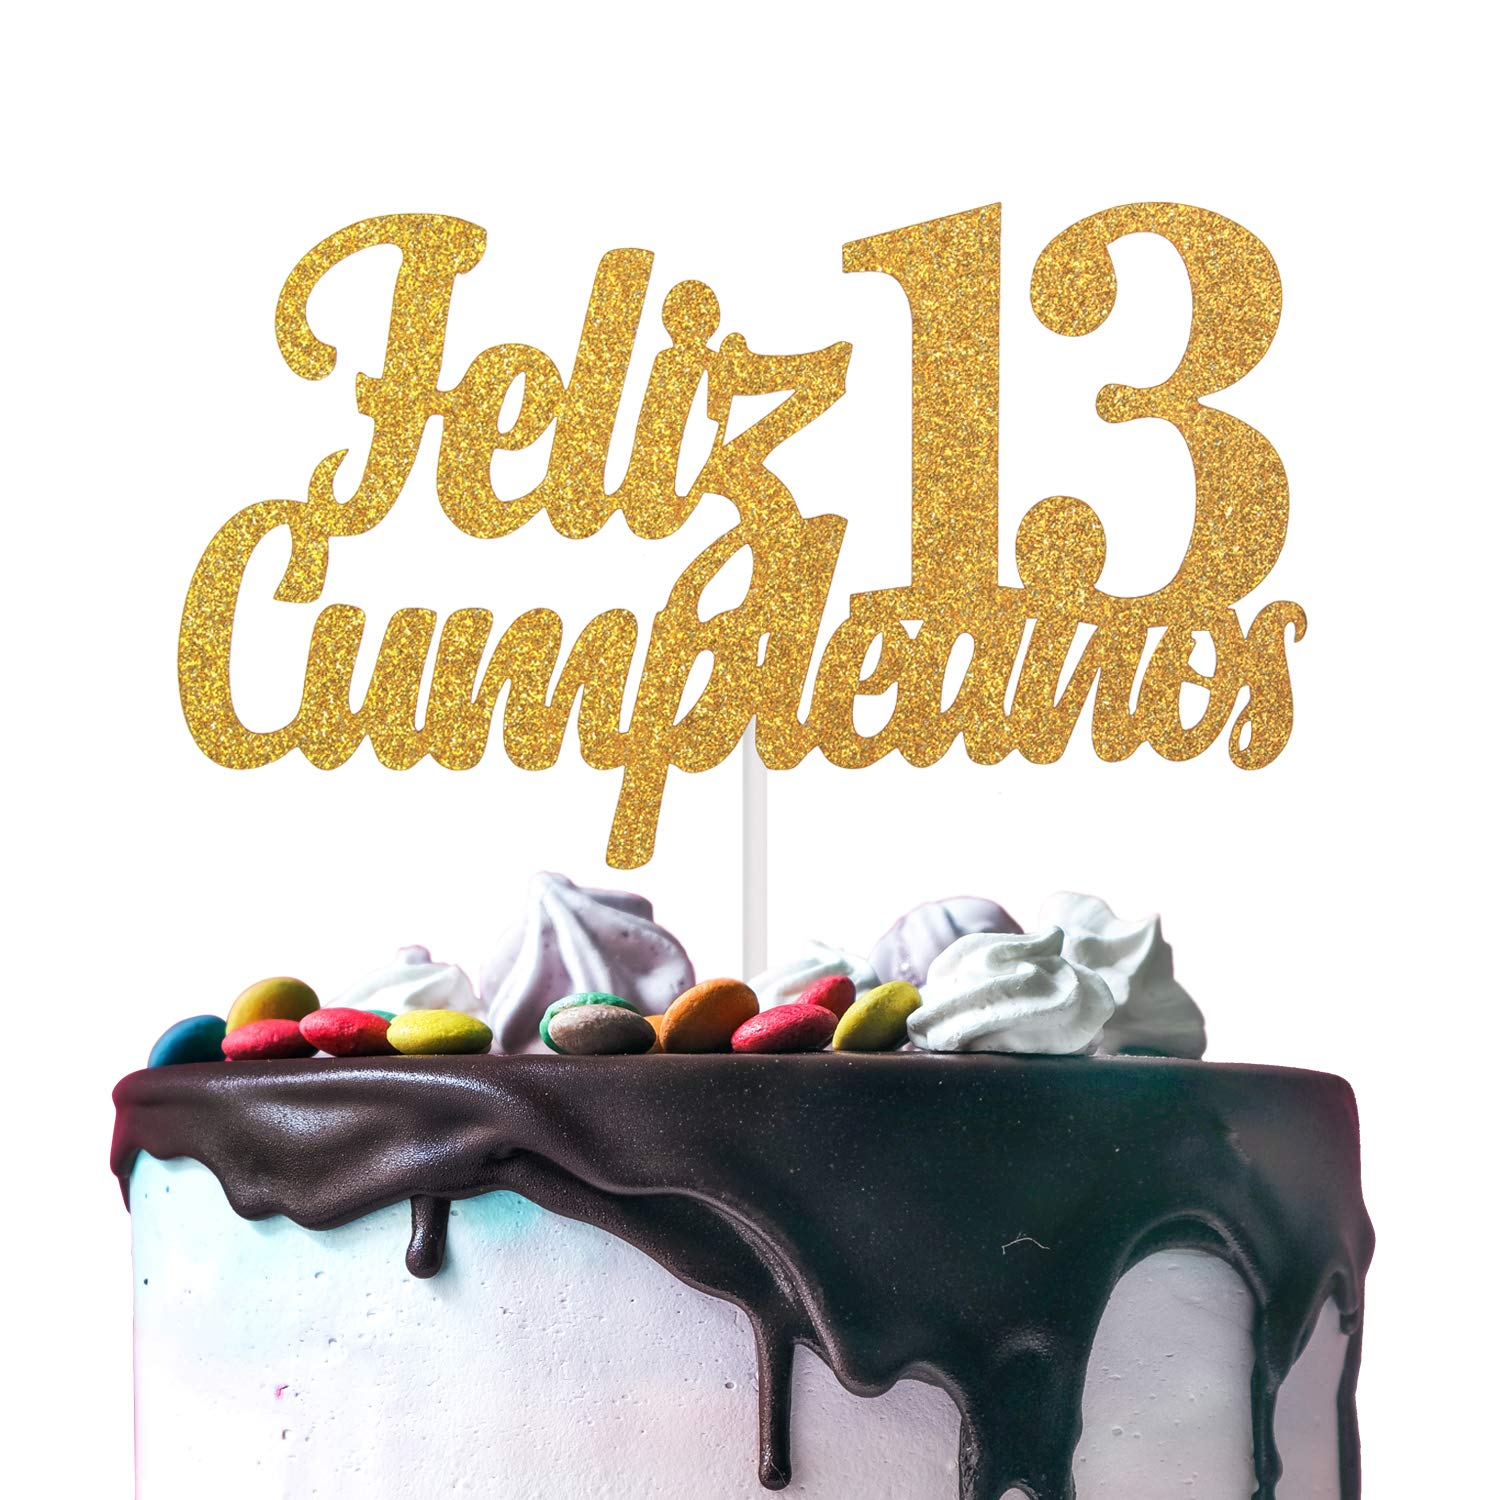 Feliz Cumpleaños 13th Birthday Cake Topper - Gold Glitter Spanish Thirteen Years Old Adorno De Cake - Cheers To Sweet 13 - Boys Girls Trece Años ...